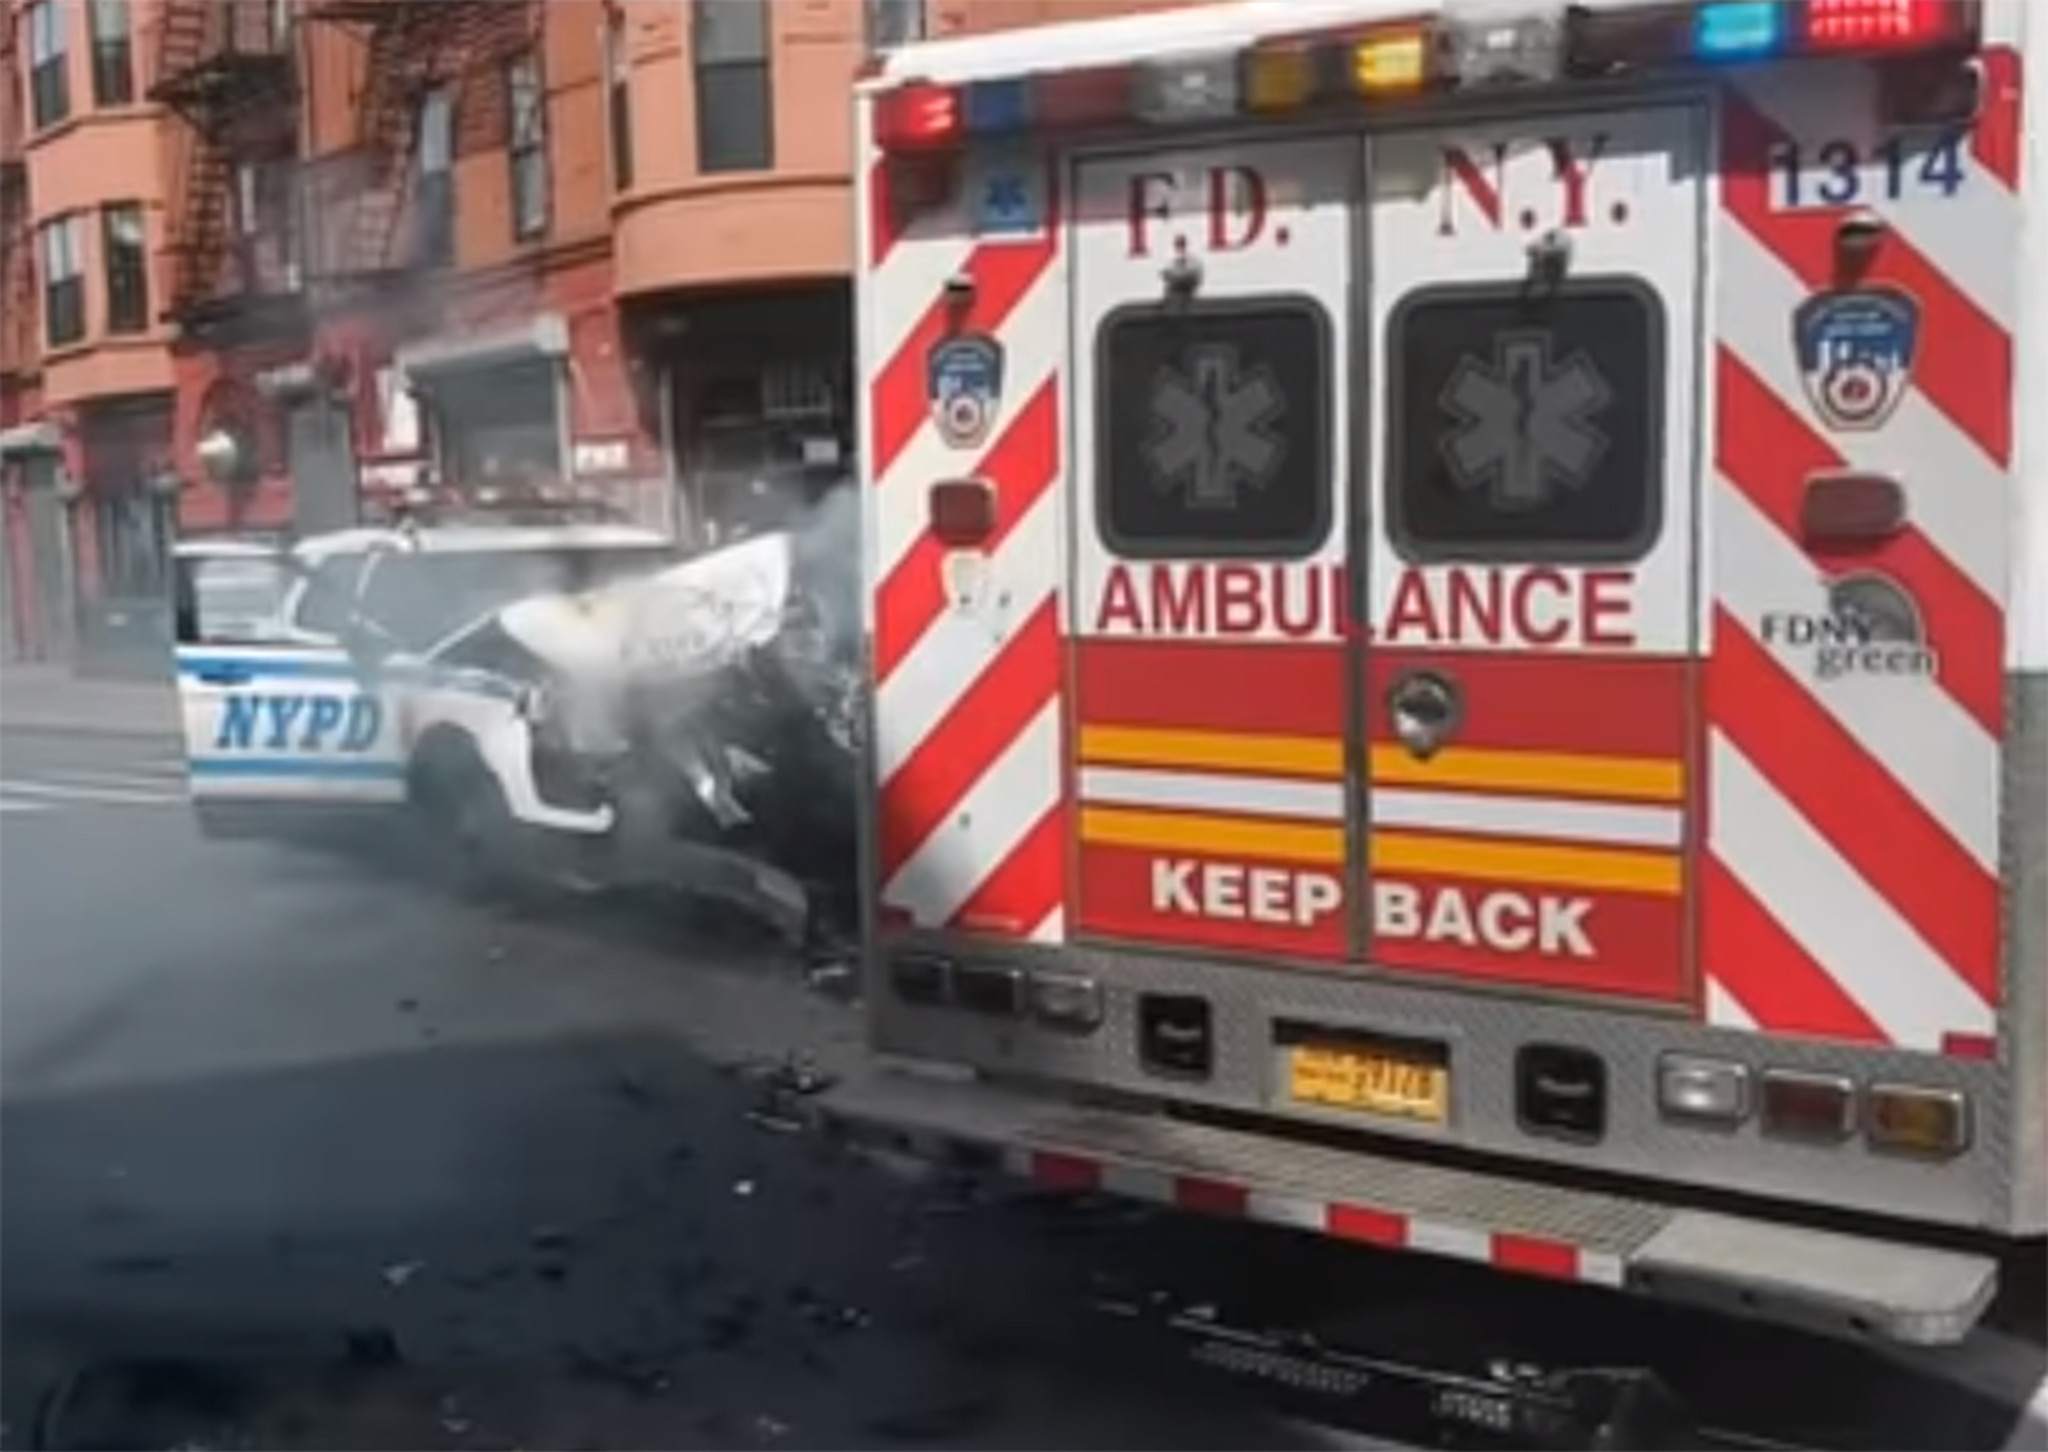 SEE IT: NYPD SUV crashed into FDNY ambulance in Brooklyn, two EMTs and two cops hurt